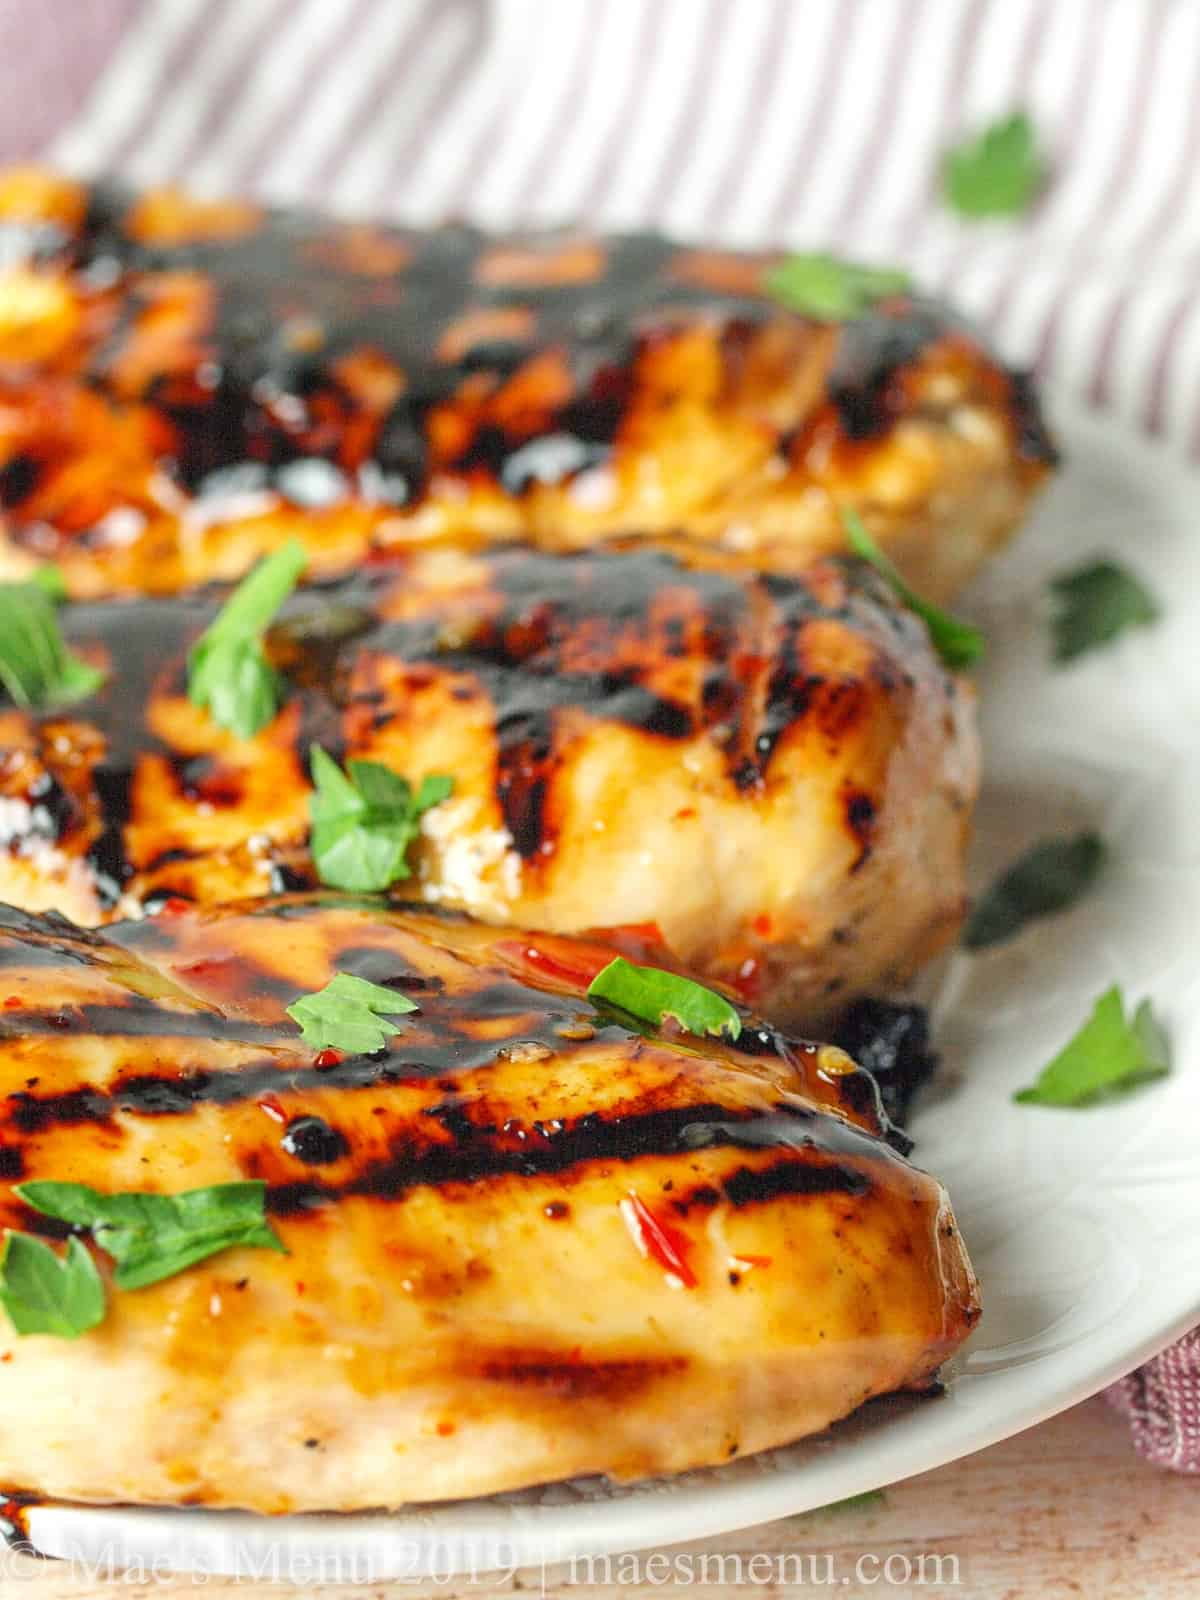 A side shot of 3 grilled sweet chili chicken breasts.